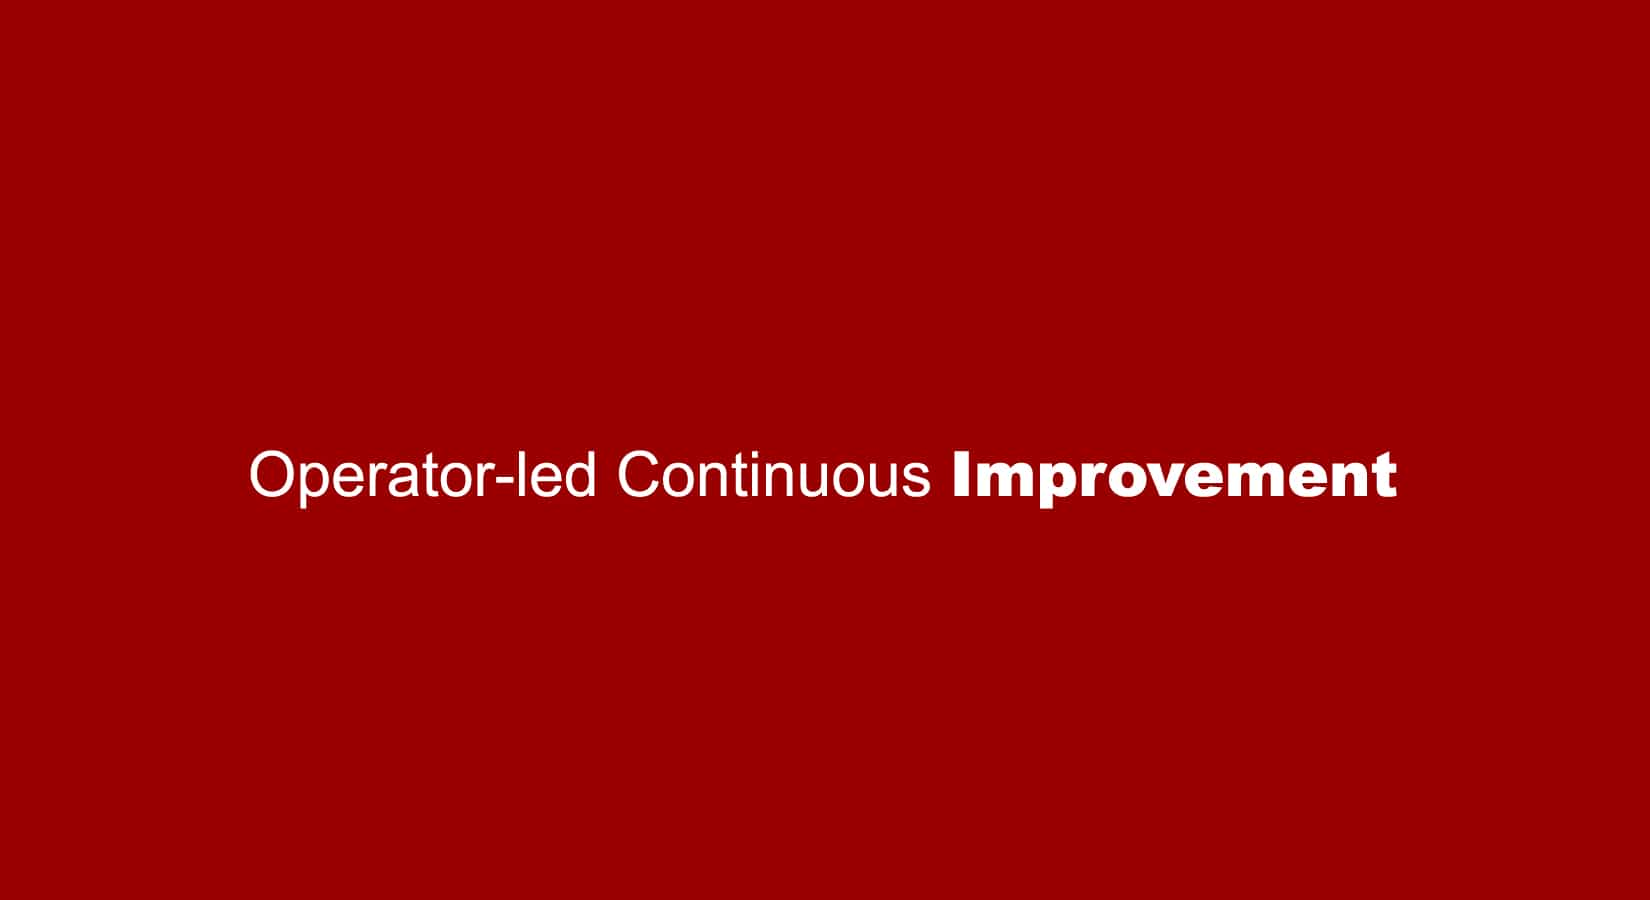 Impruver Operator-led Continuous Improvement